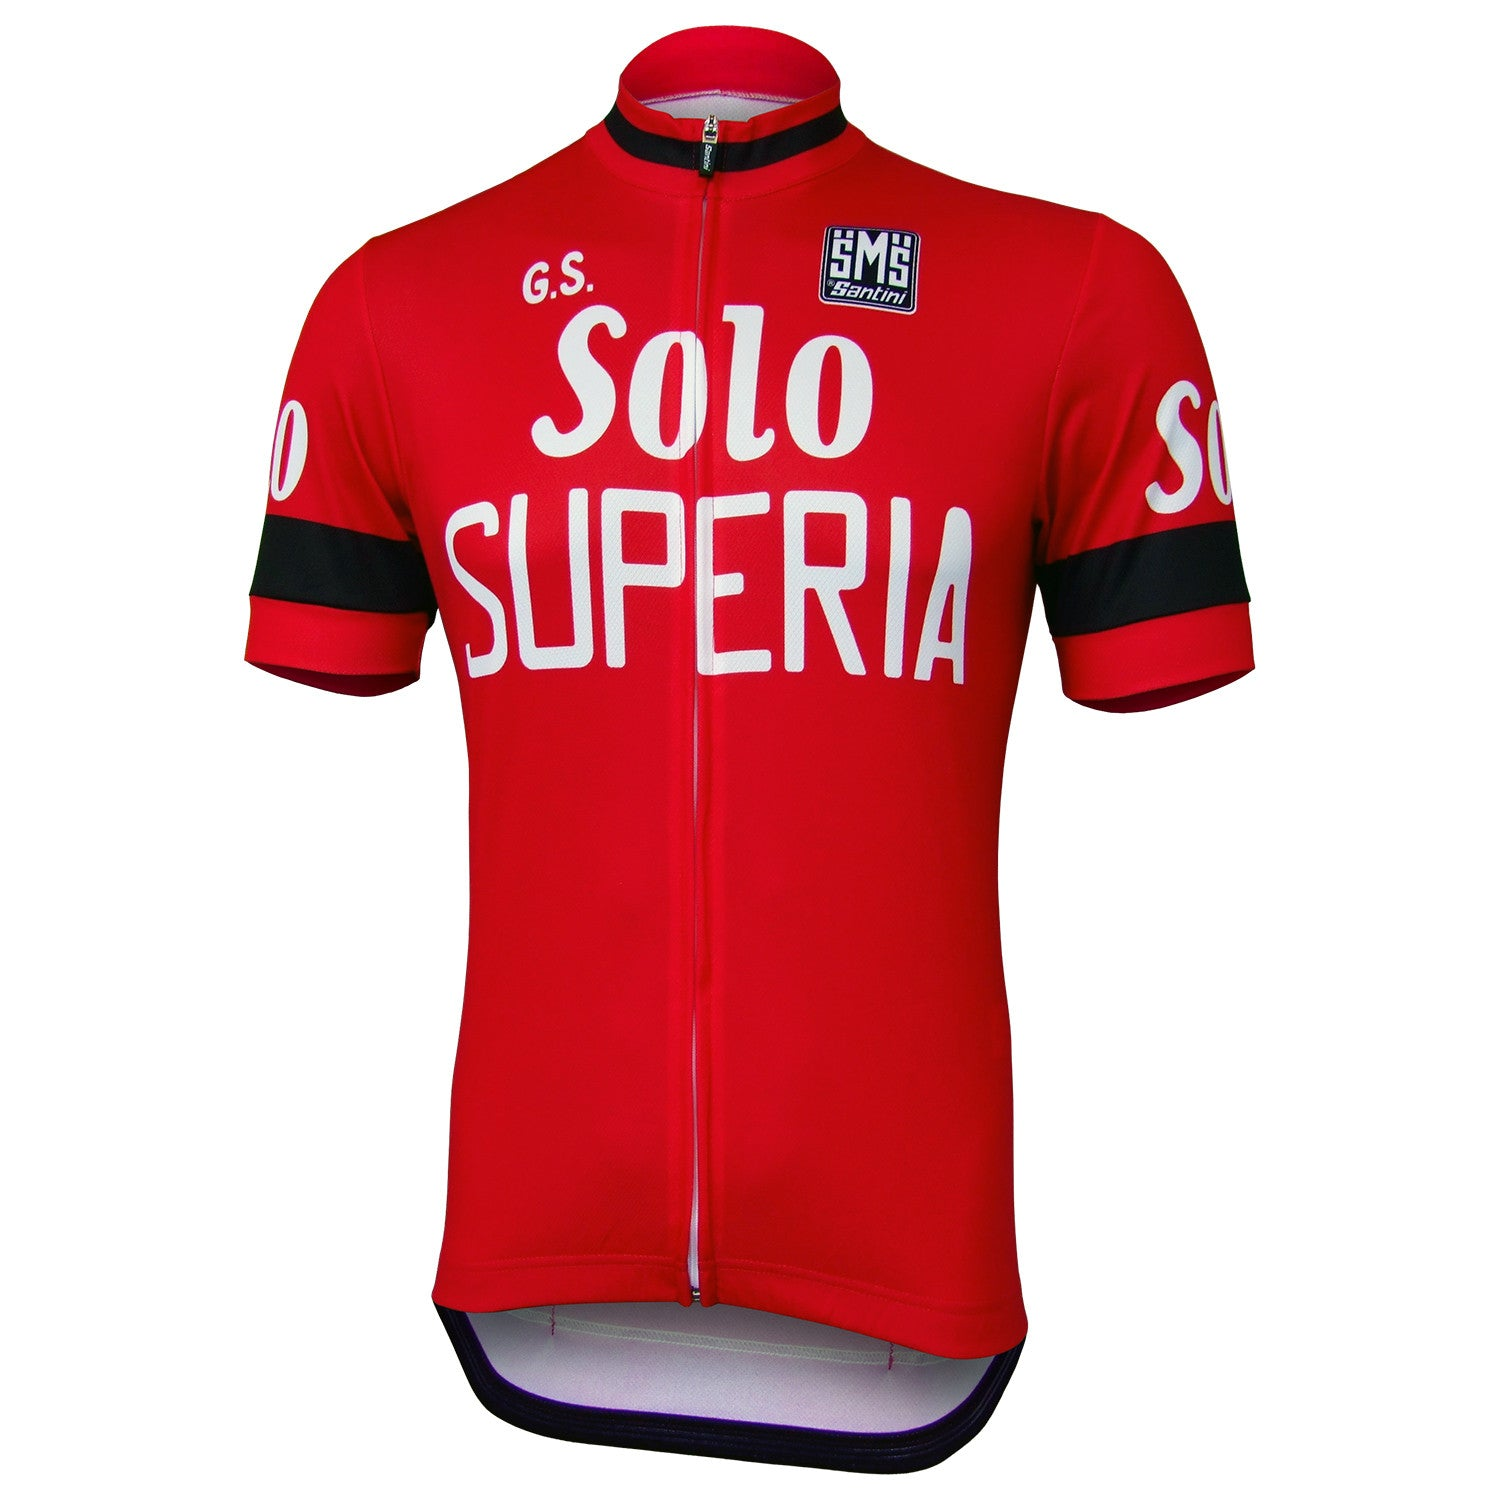 G.S. Solo Superia Retro Cycling Jersey - Short Sleeve - Prendas Ciclismo 88328aaf2